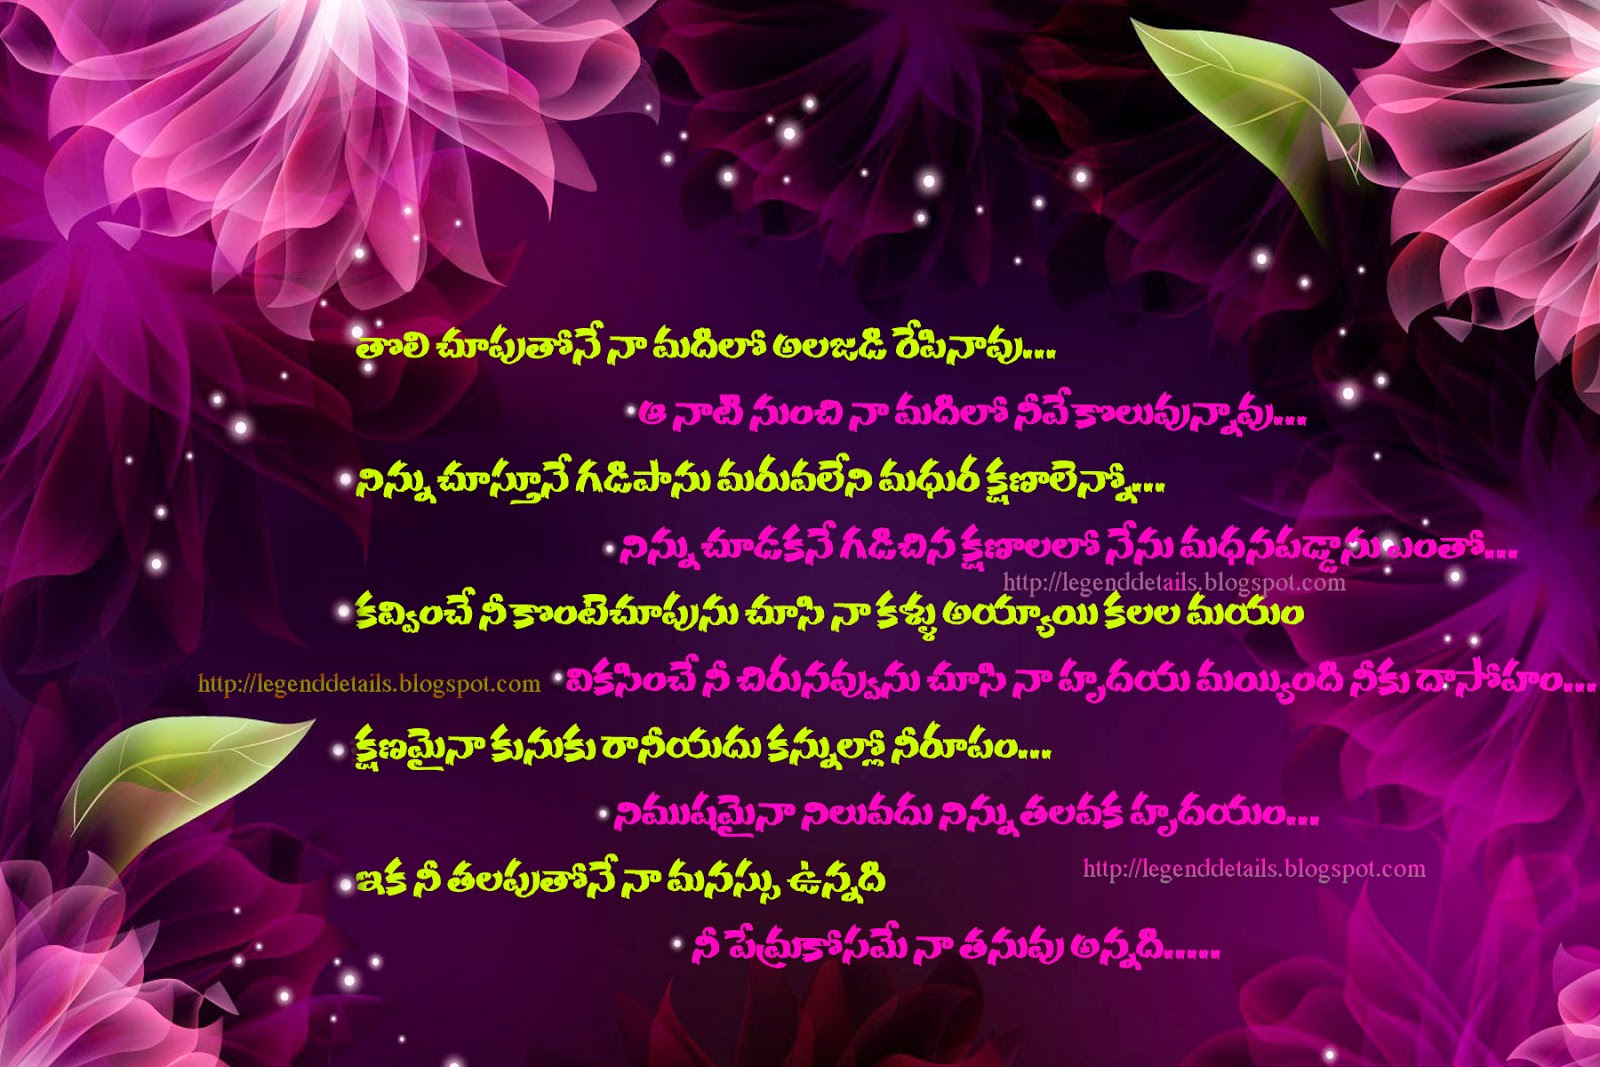 Quotes About Love At First Site Love At First Sight Letter In Telugu  Legendary Quotes